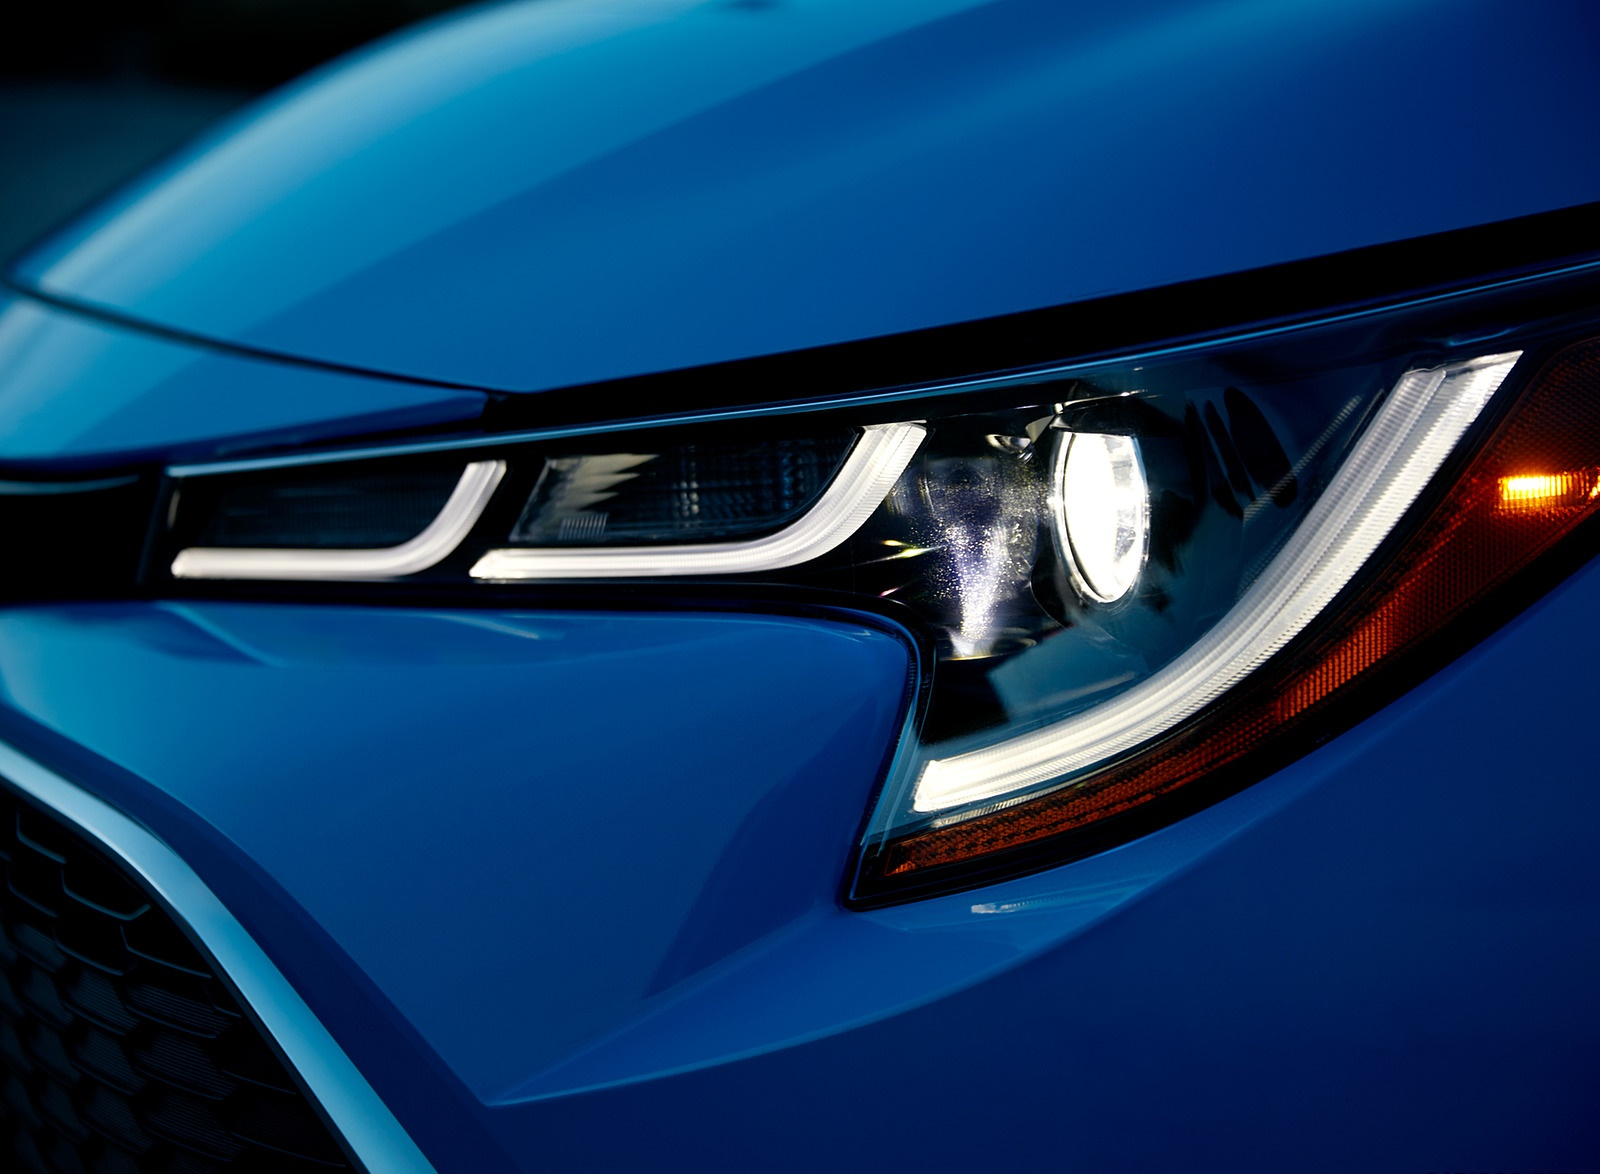 2019 Toyota Corolla Hatchback Headlight Wallpapers #12 of 75